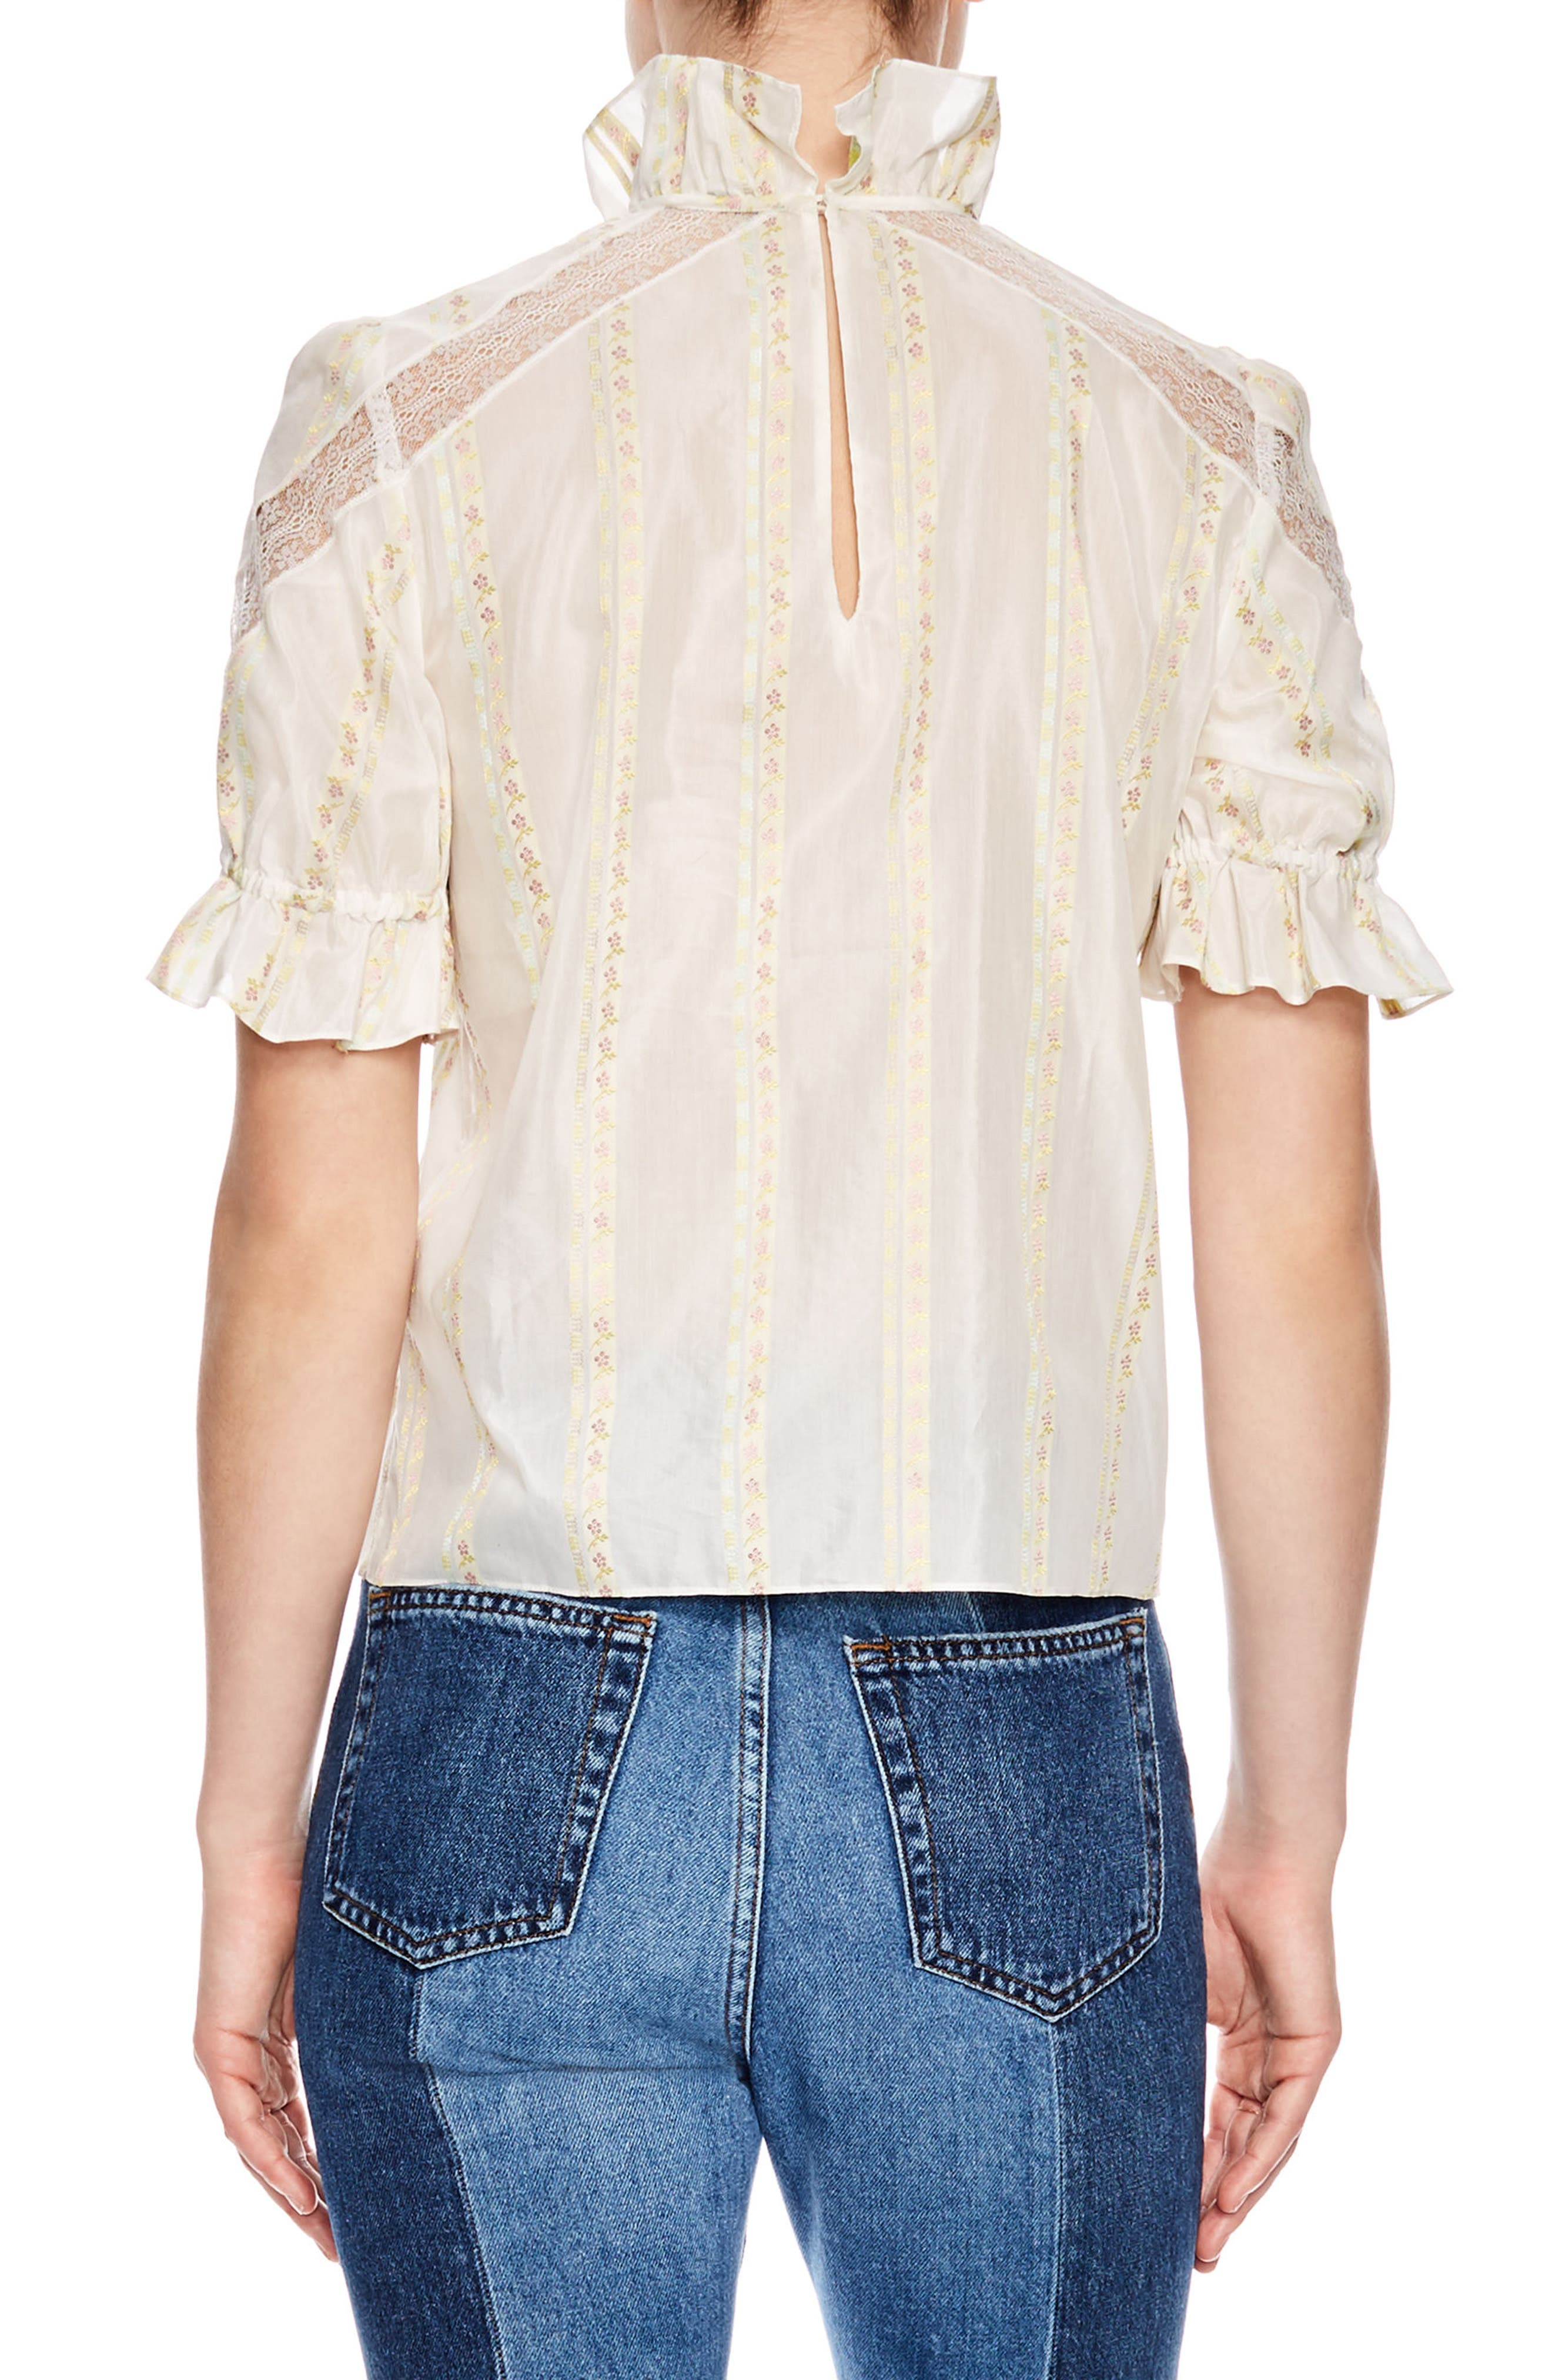 Ecru Lace Inset Blouse,                             Alternate thumbnail 2, color,                             900